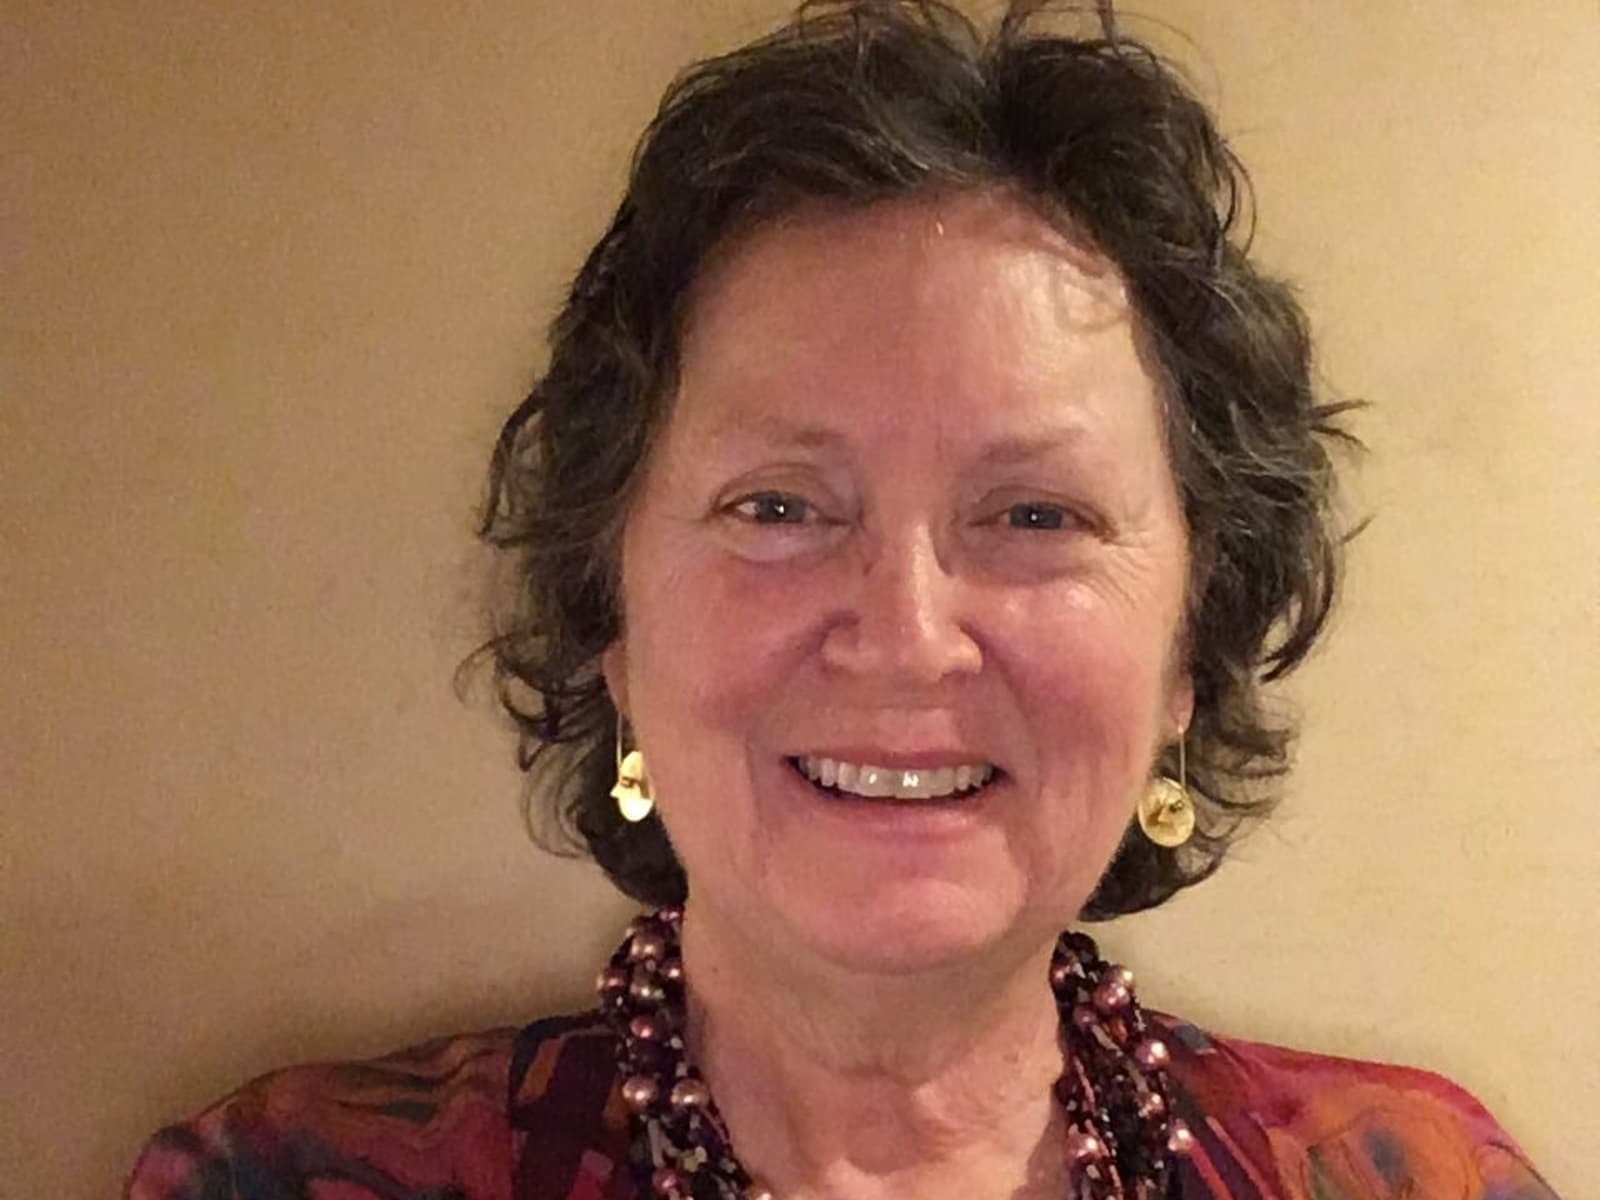 Linda from Montpelier, Vermont, United States